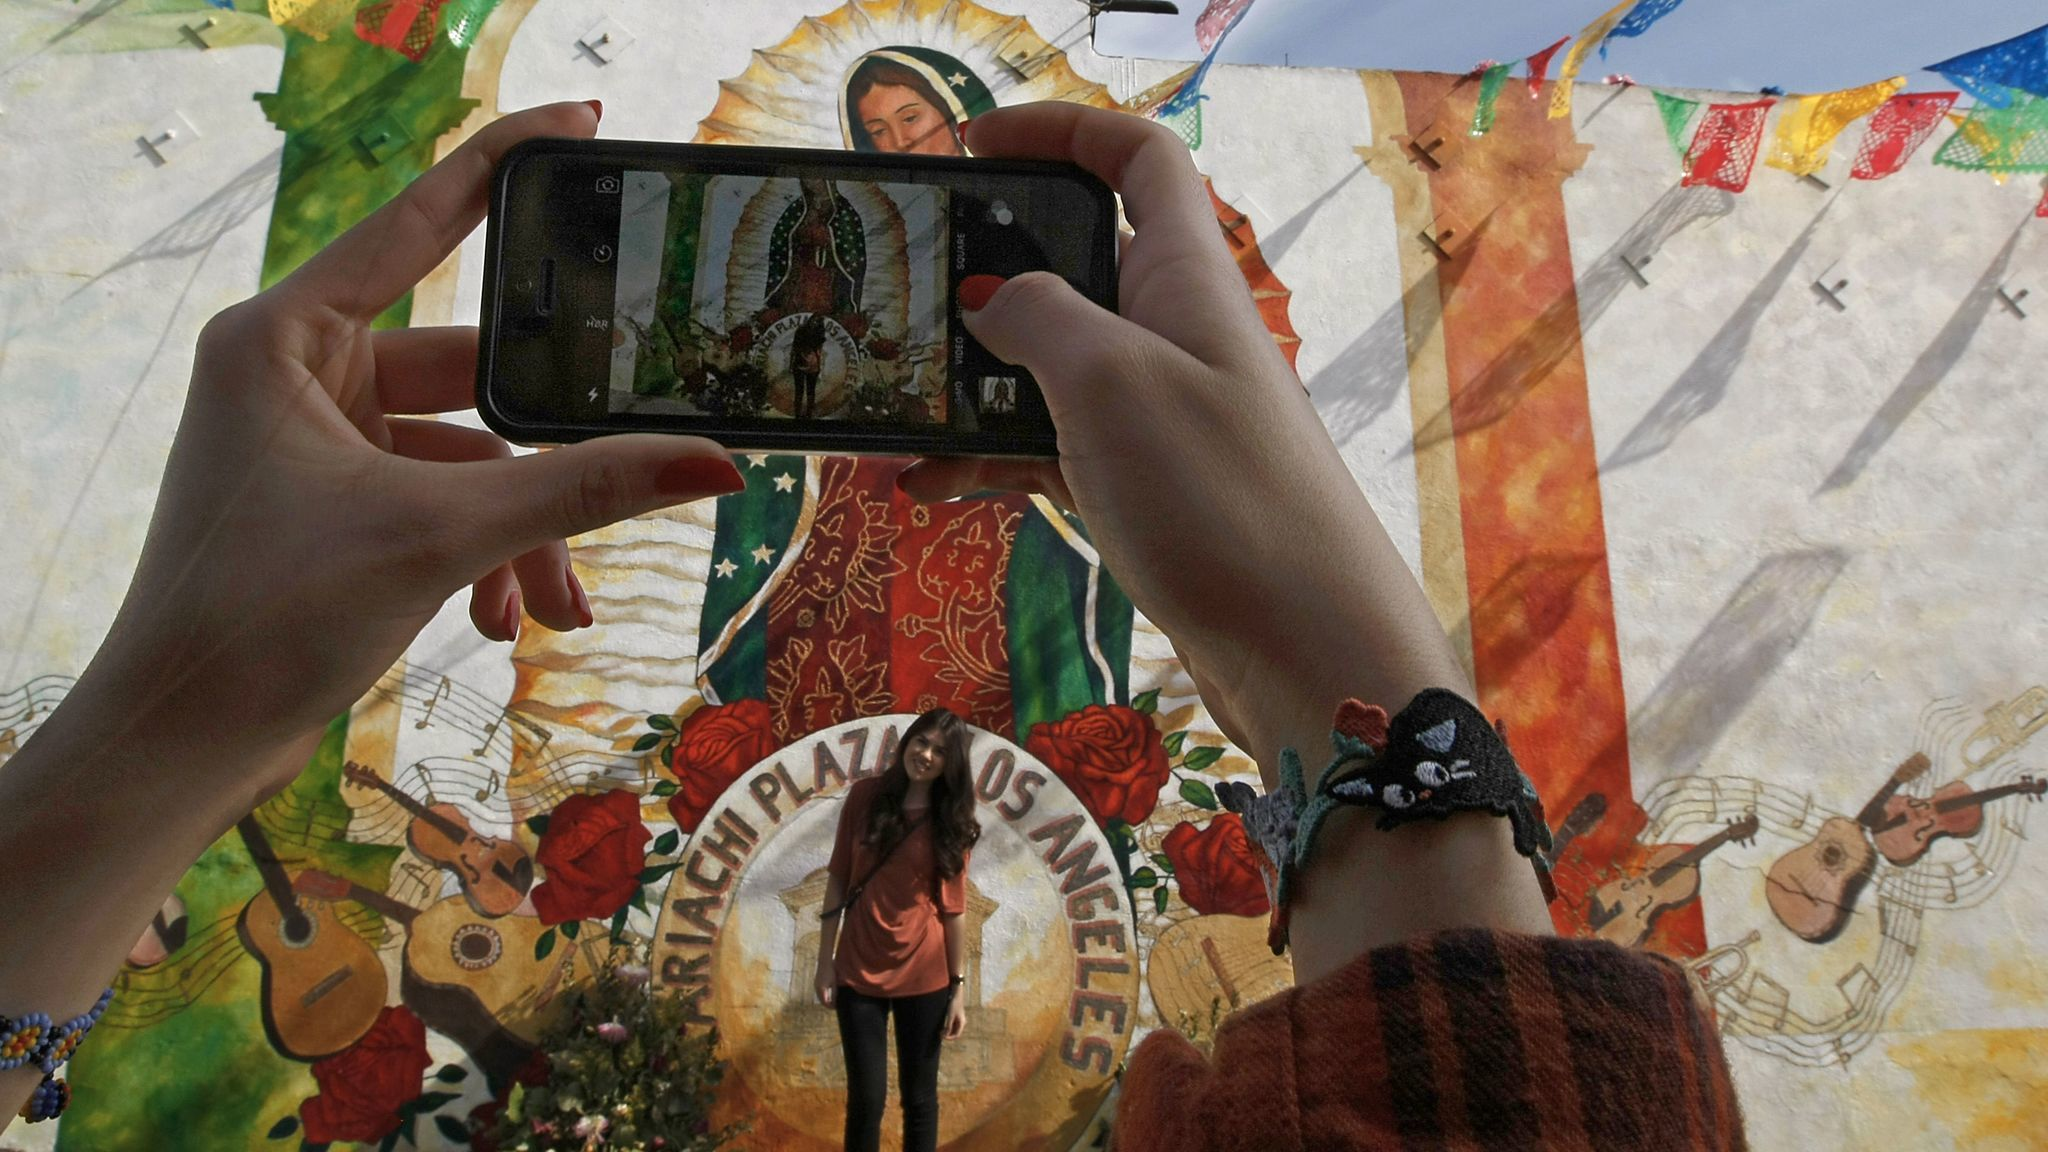 Jessica Alvarez takes a photo of Briana Alvarez on a visit to Mariachi Plaza in Boyle Heights.